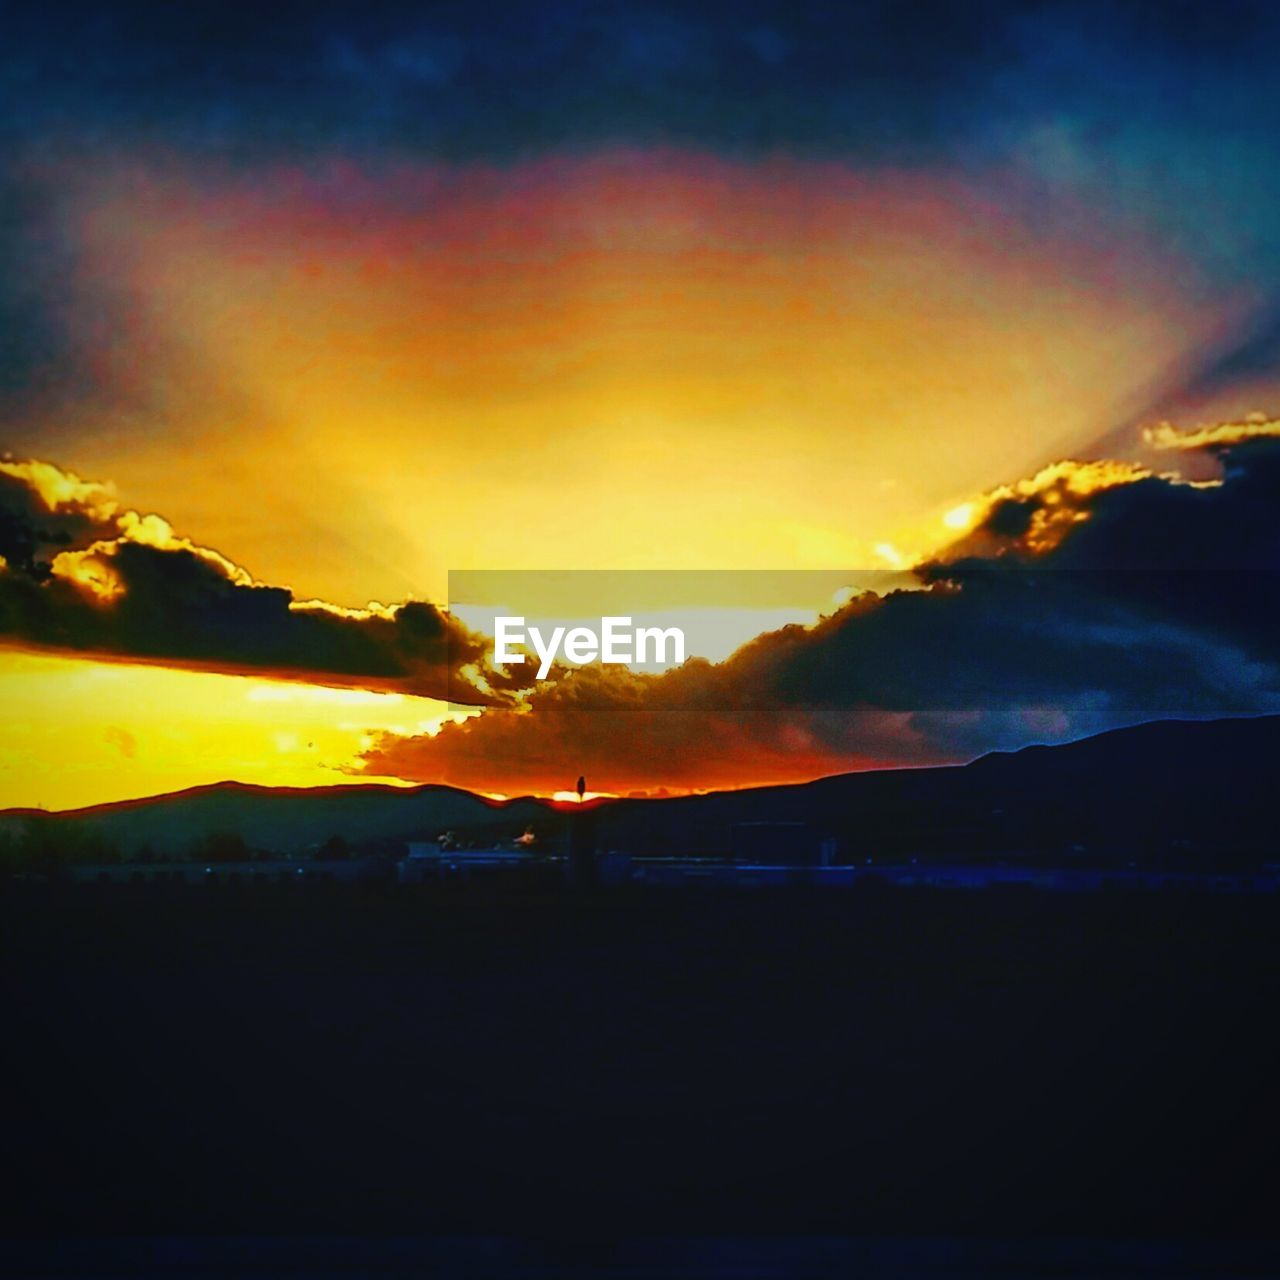 sunset, silhouette, beauty in nature, scenics, nature, sky, orange color, tranquility, dramatic sky, tranquil scene, mountain, no people, outdoors, cloud - sky, landscape, day